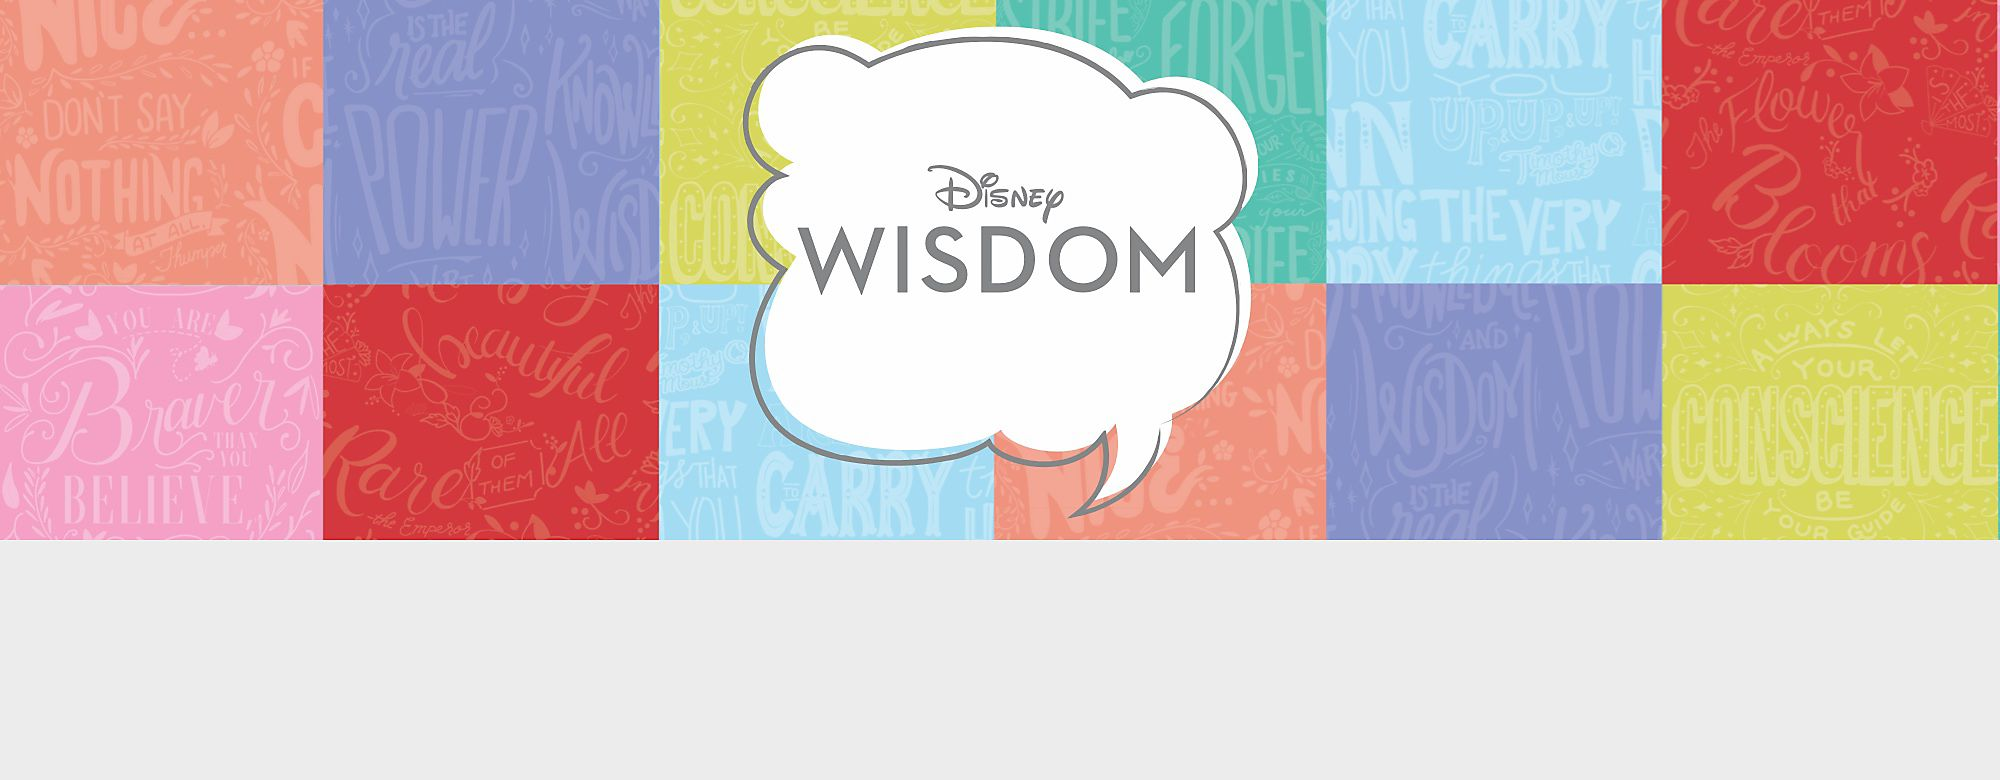 Walt Disney Christmas Quotes.Disney Wisdom Collection New Collectible Series Shopdisney